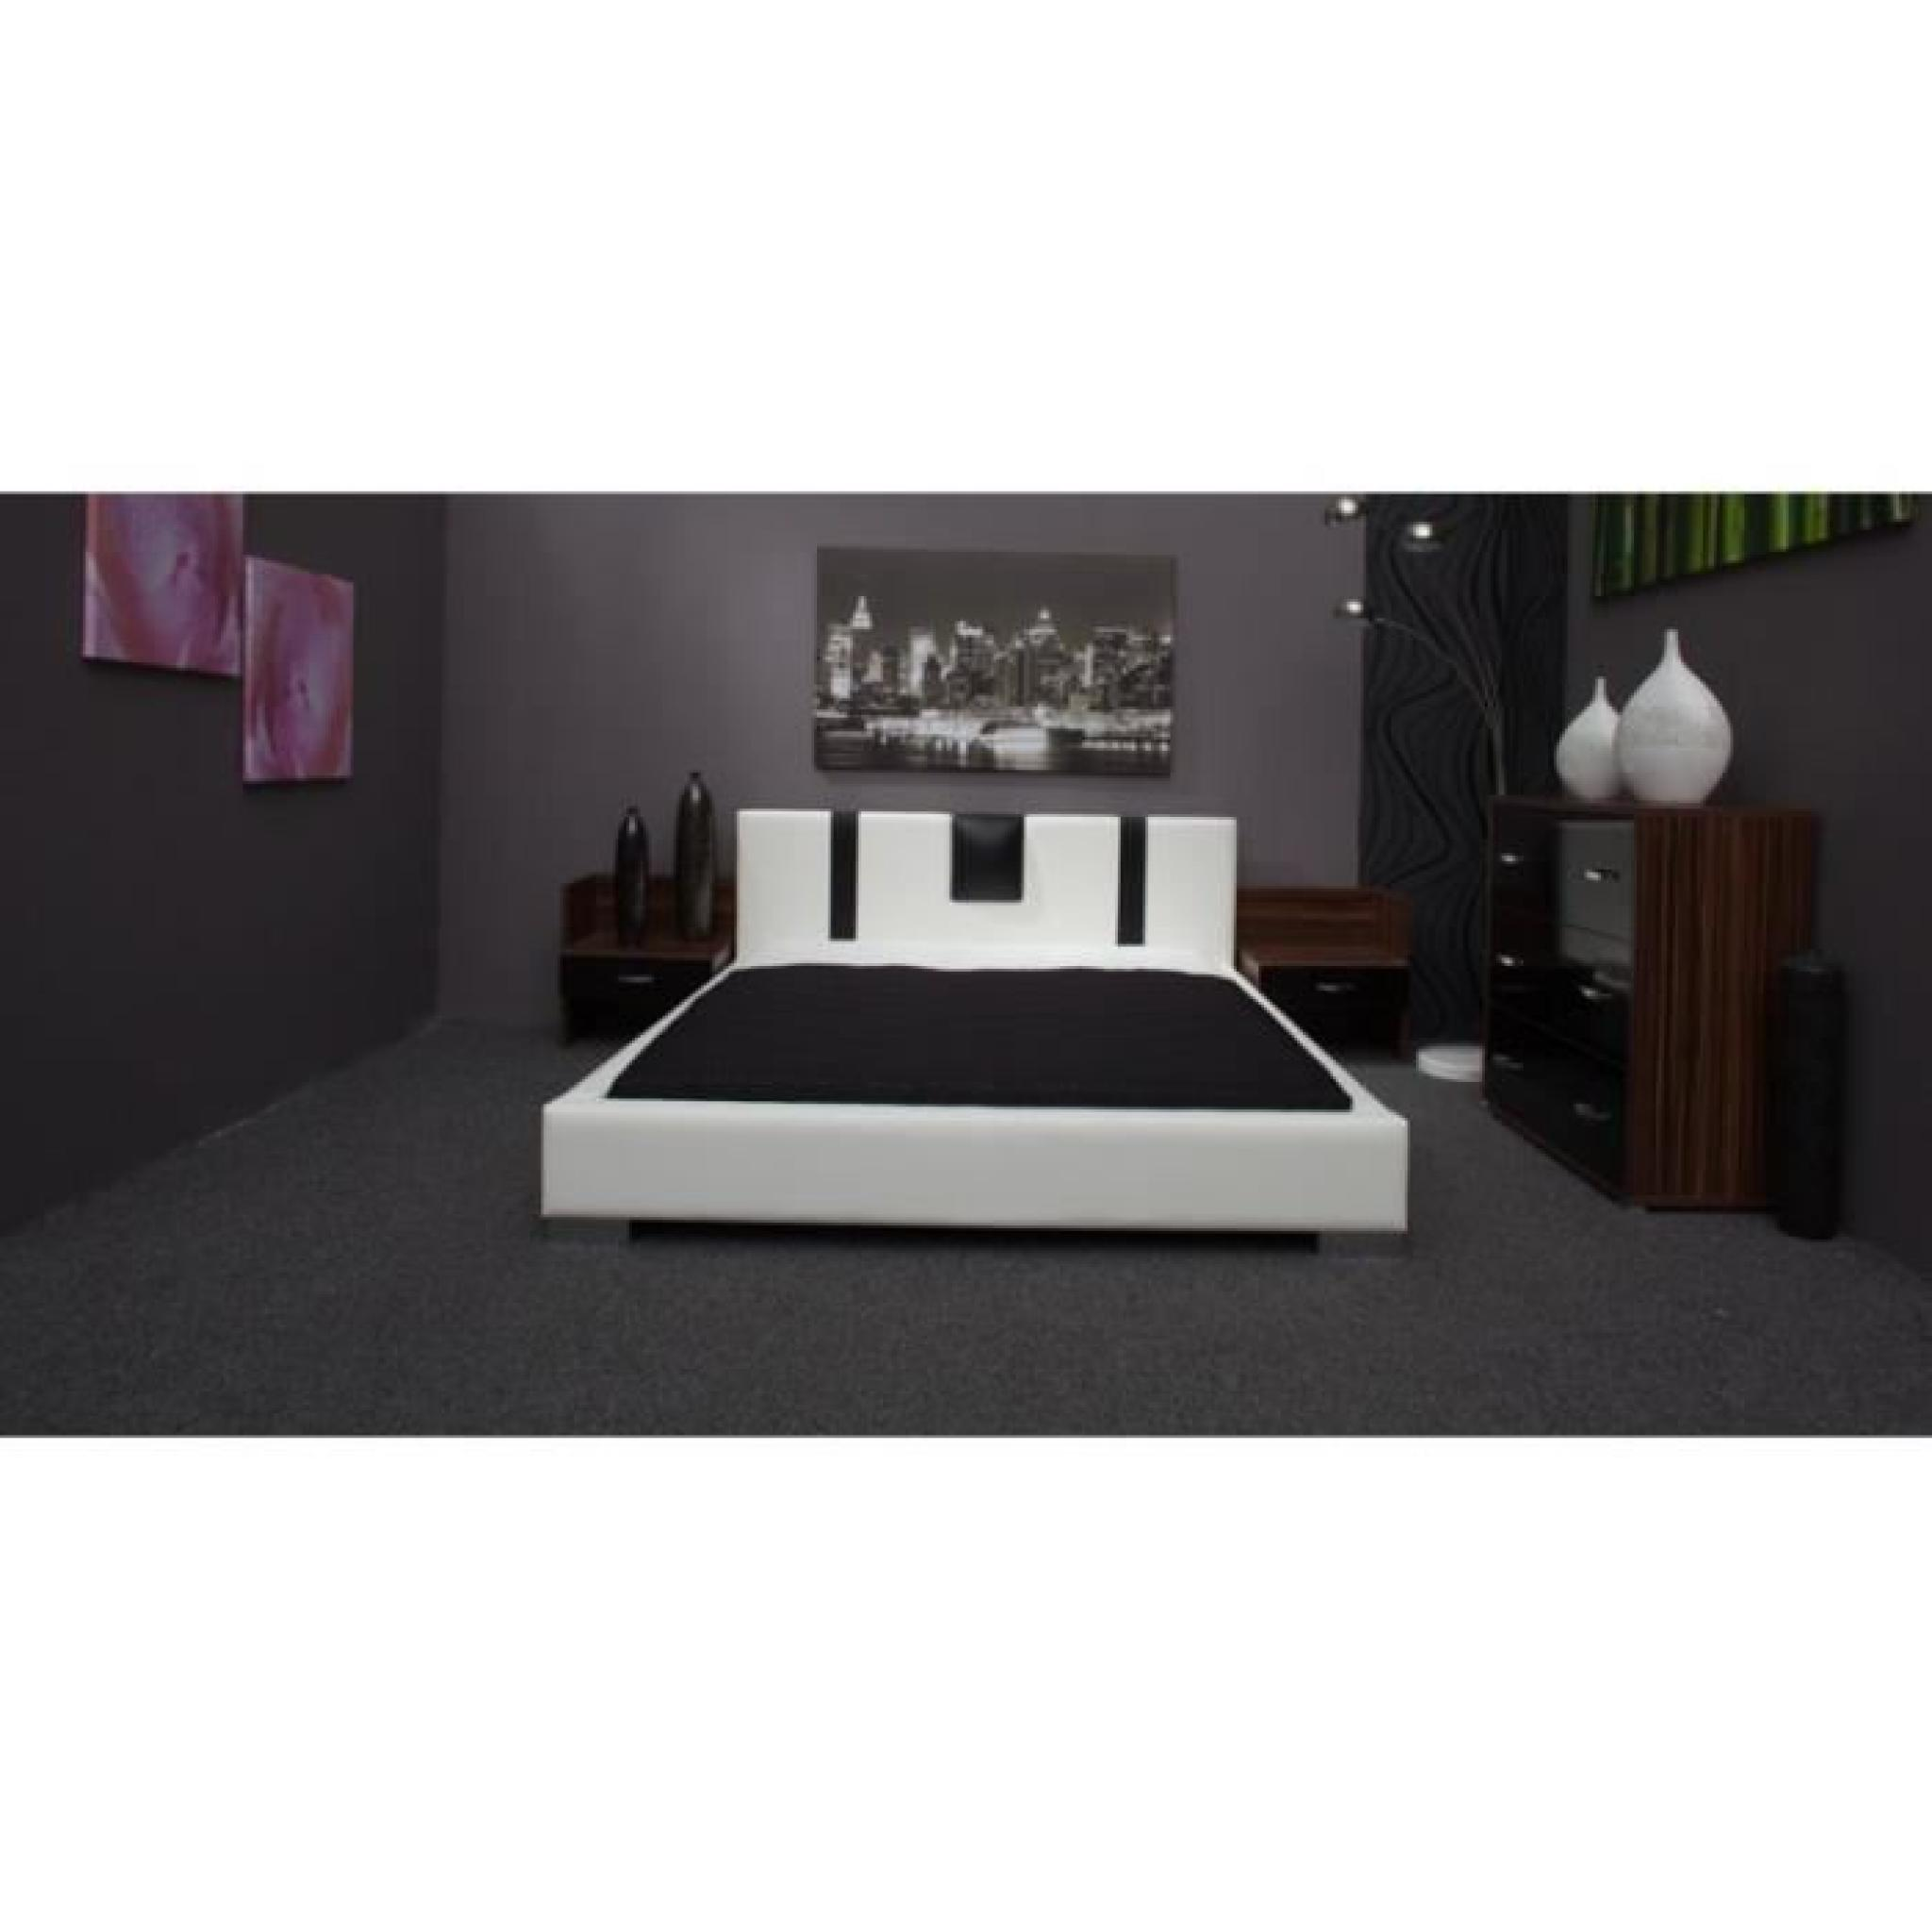 justhome sandor lit en cuir cologique blanc noir 140 x 200cm achat vente lit pas cher. Black Bedroom Furniture Sets. Home Design Ideas